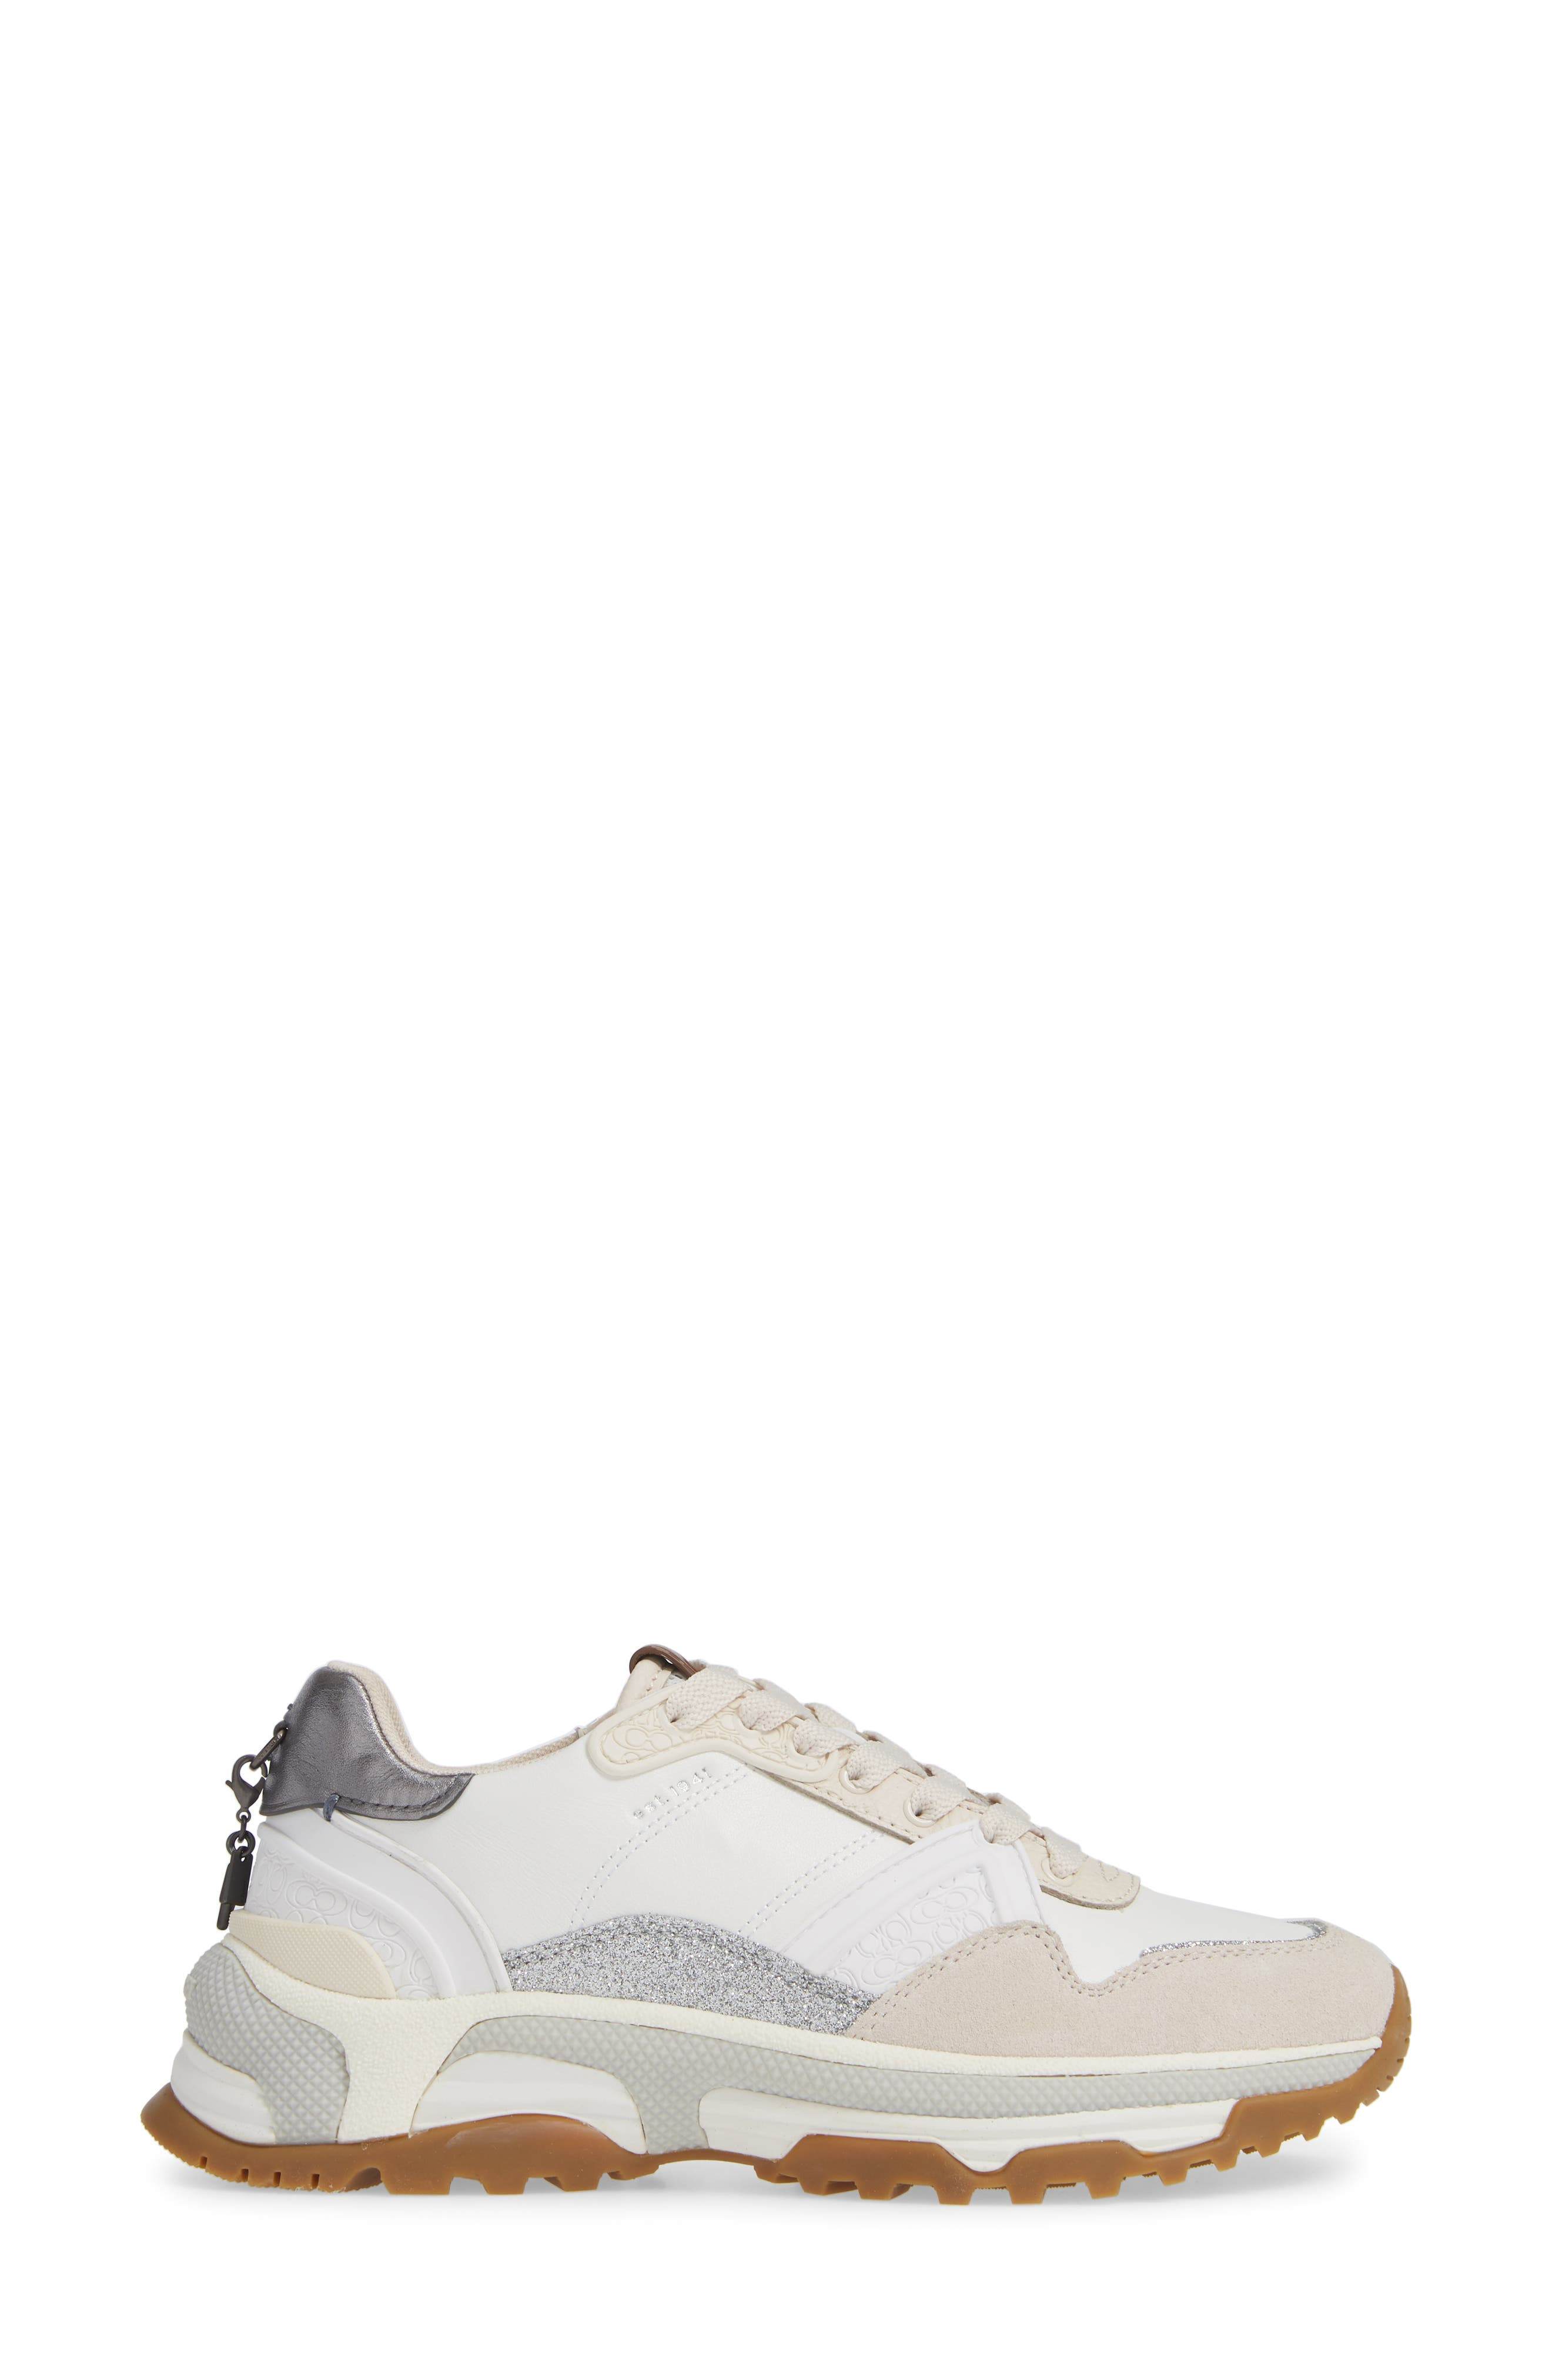 GLT Sneaker,                             Alternate thumbnail 3, color,                             WHITE LEATHER/ SUEDE